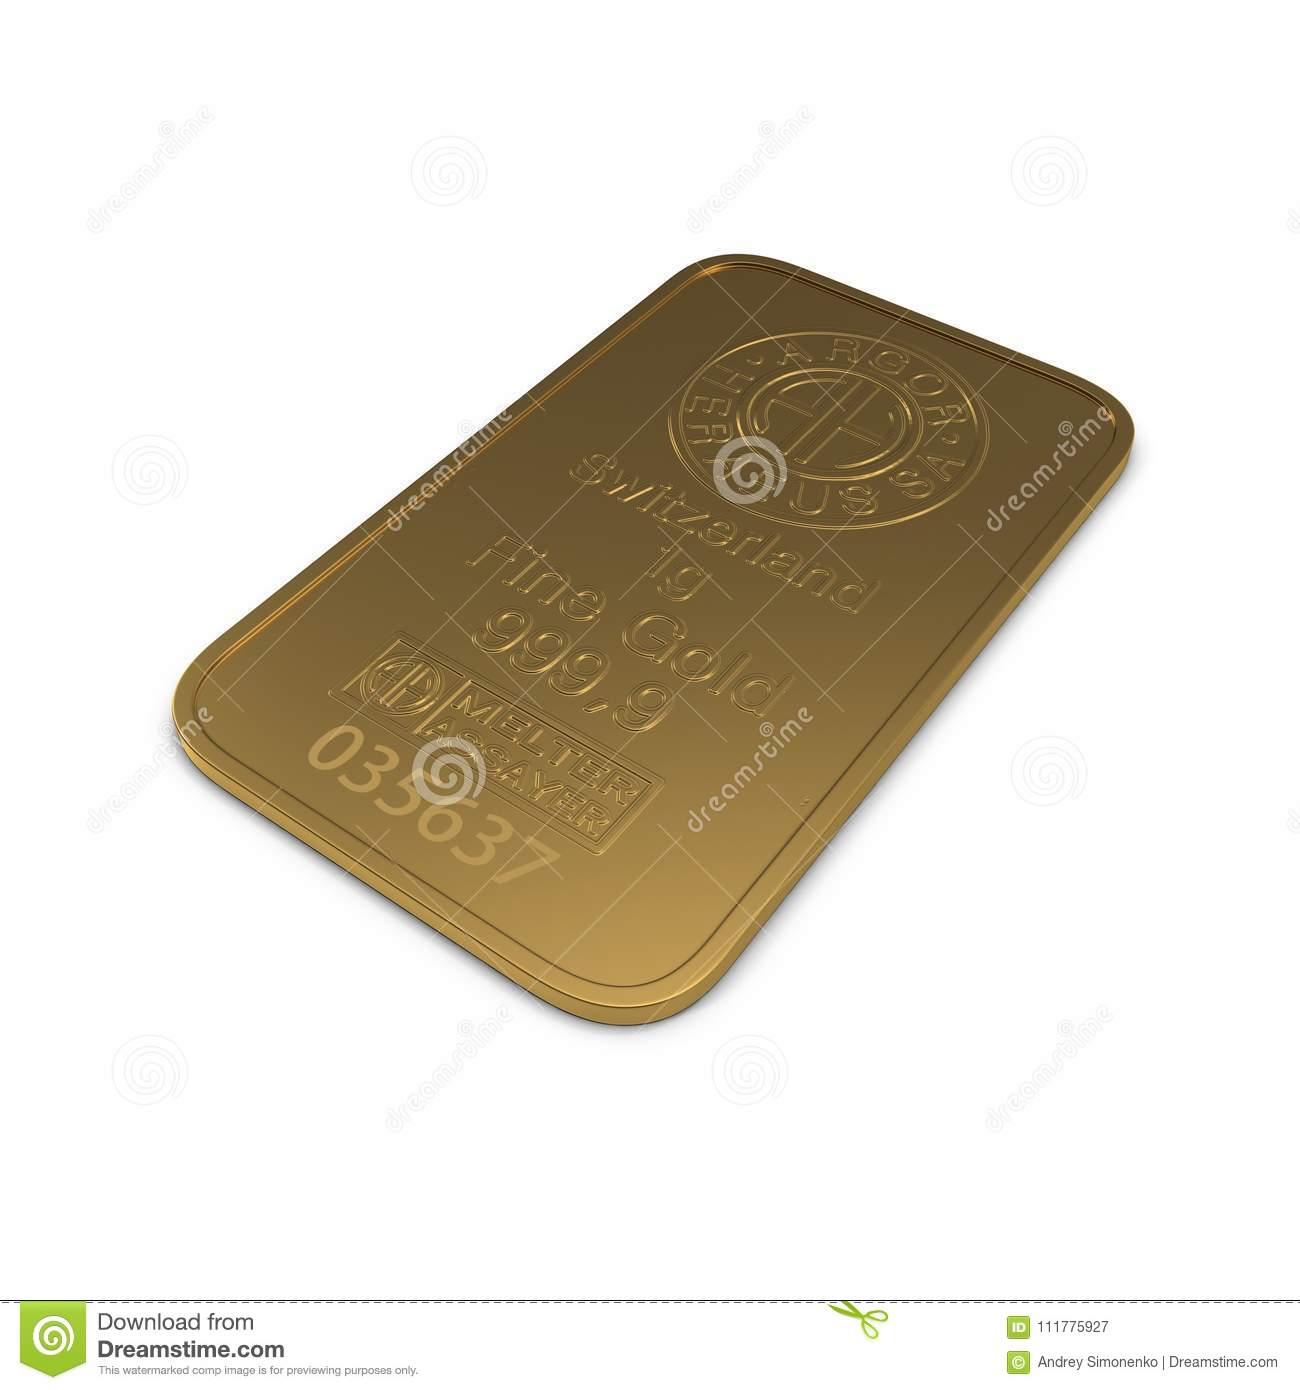 Gold bar 1g isolated on white. 3D illustration